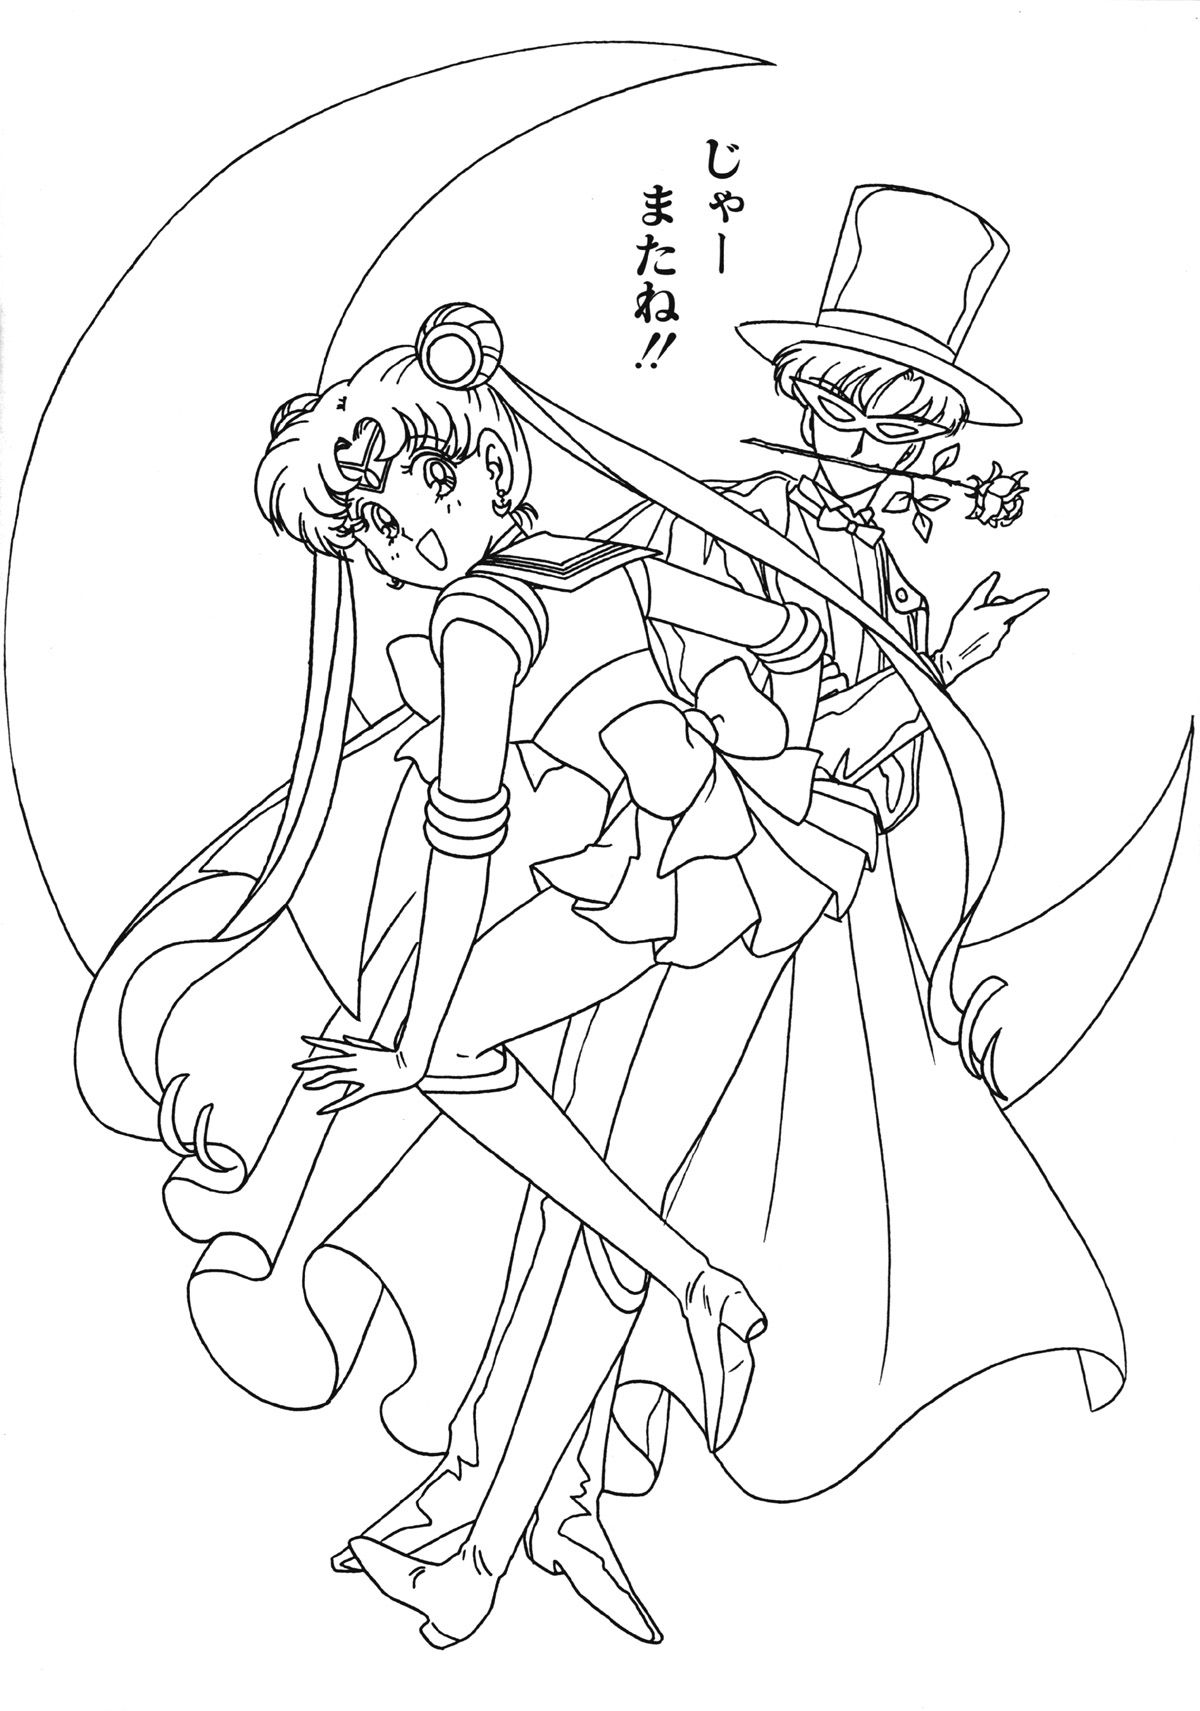 Sailor moon coloring pages and tuxedo mask | Moon coloring ...